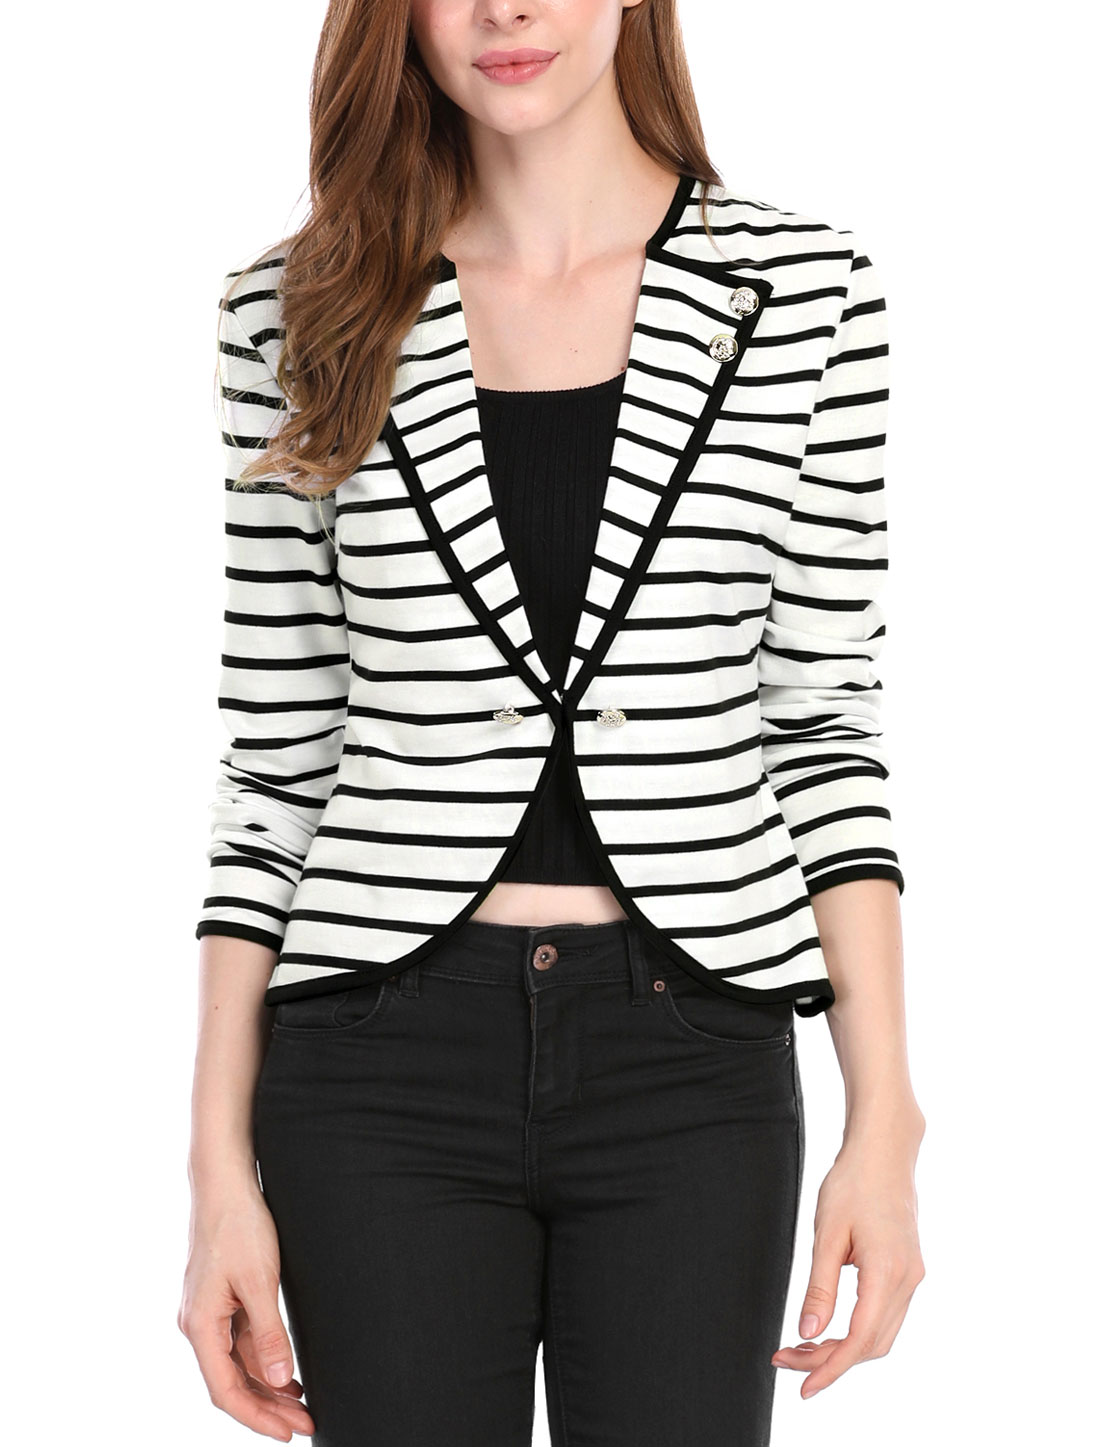 Lady Fashional Two Tone Black White Stripes Pattern Casual Blazer M